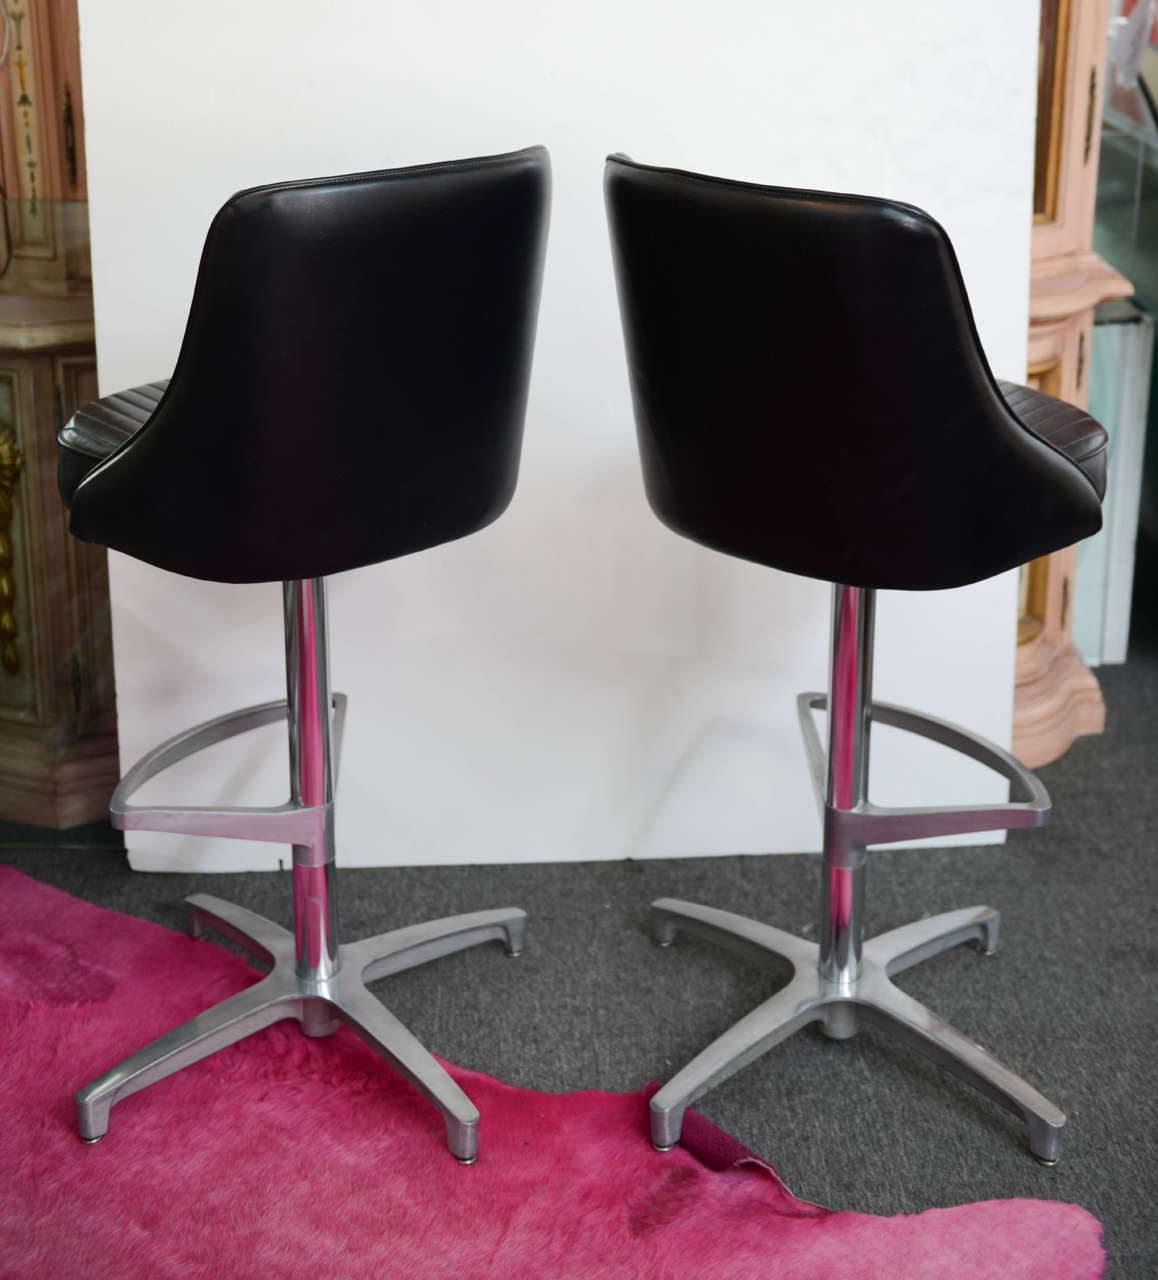 the revolving chair miami dental assistant chairs 1960s mod mid century modern chromcraft barstools at 1stdibs